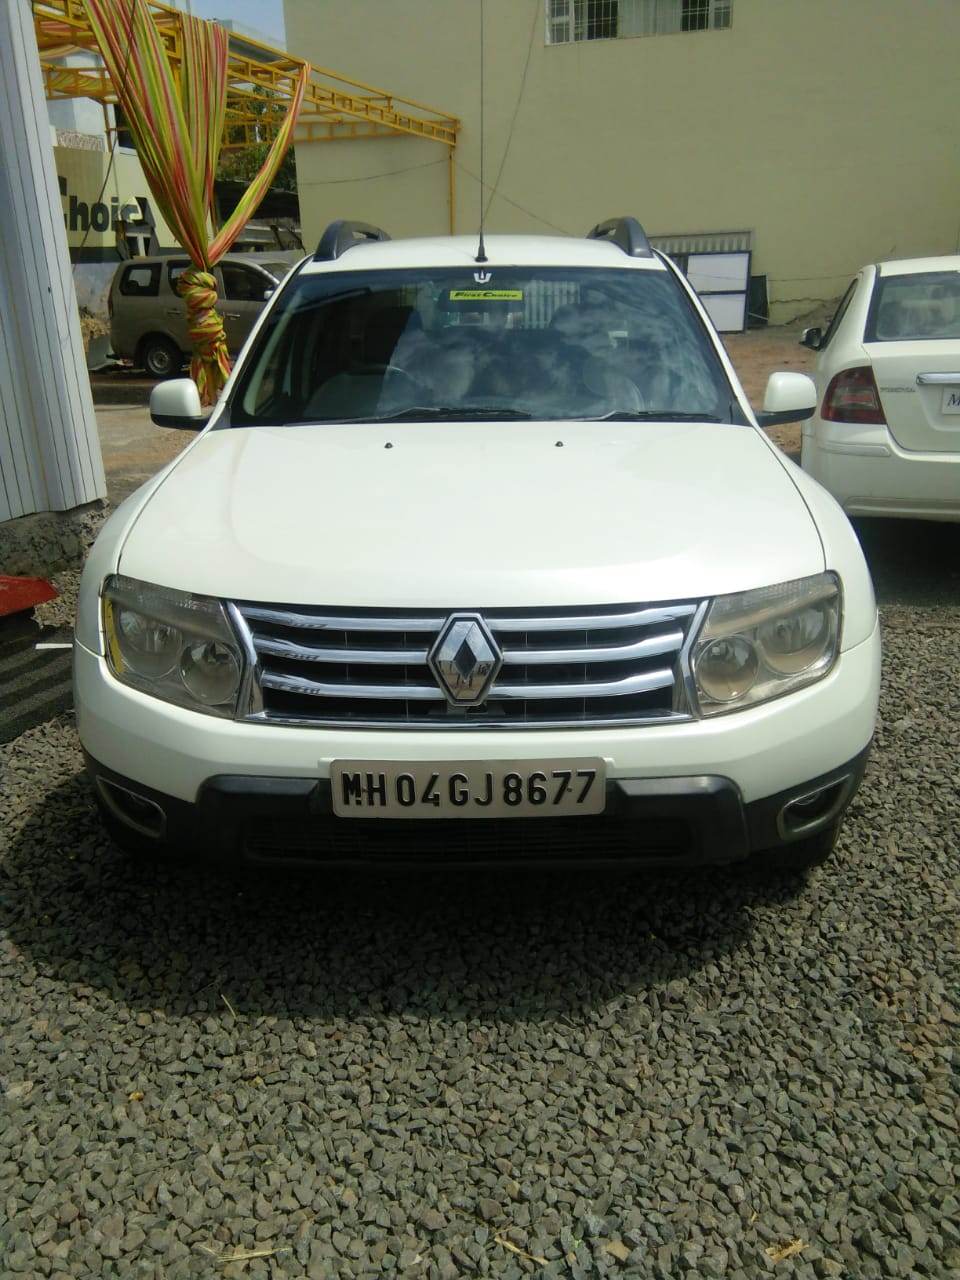 Used Cars In Osmanabad - Second Hand Cars For Sale - Used